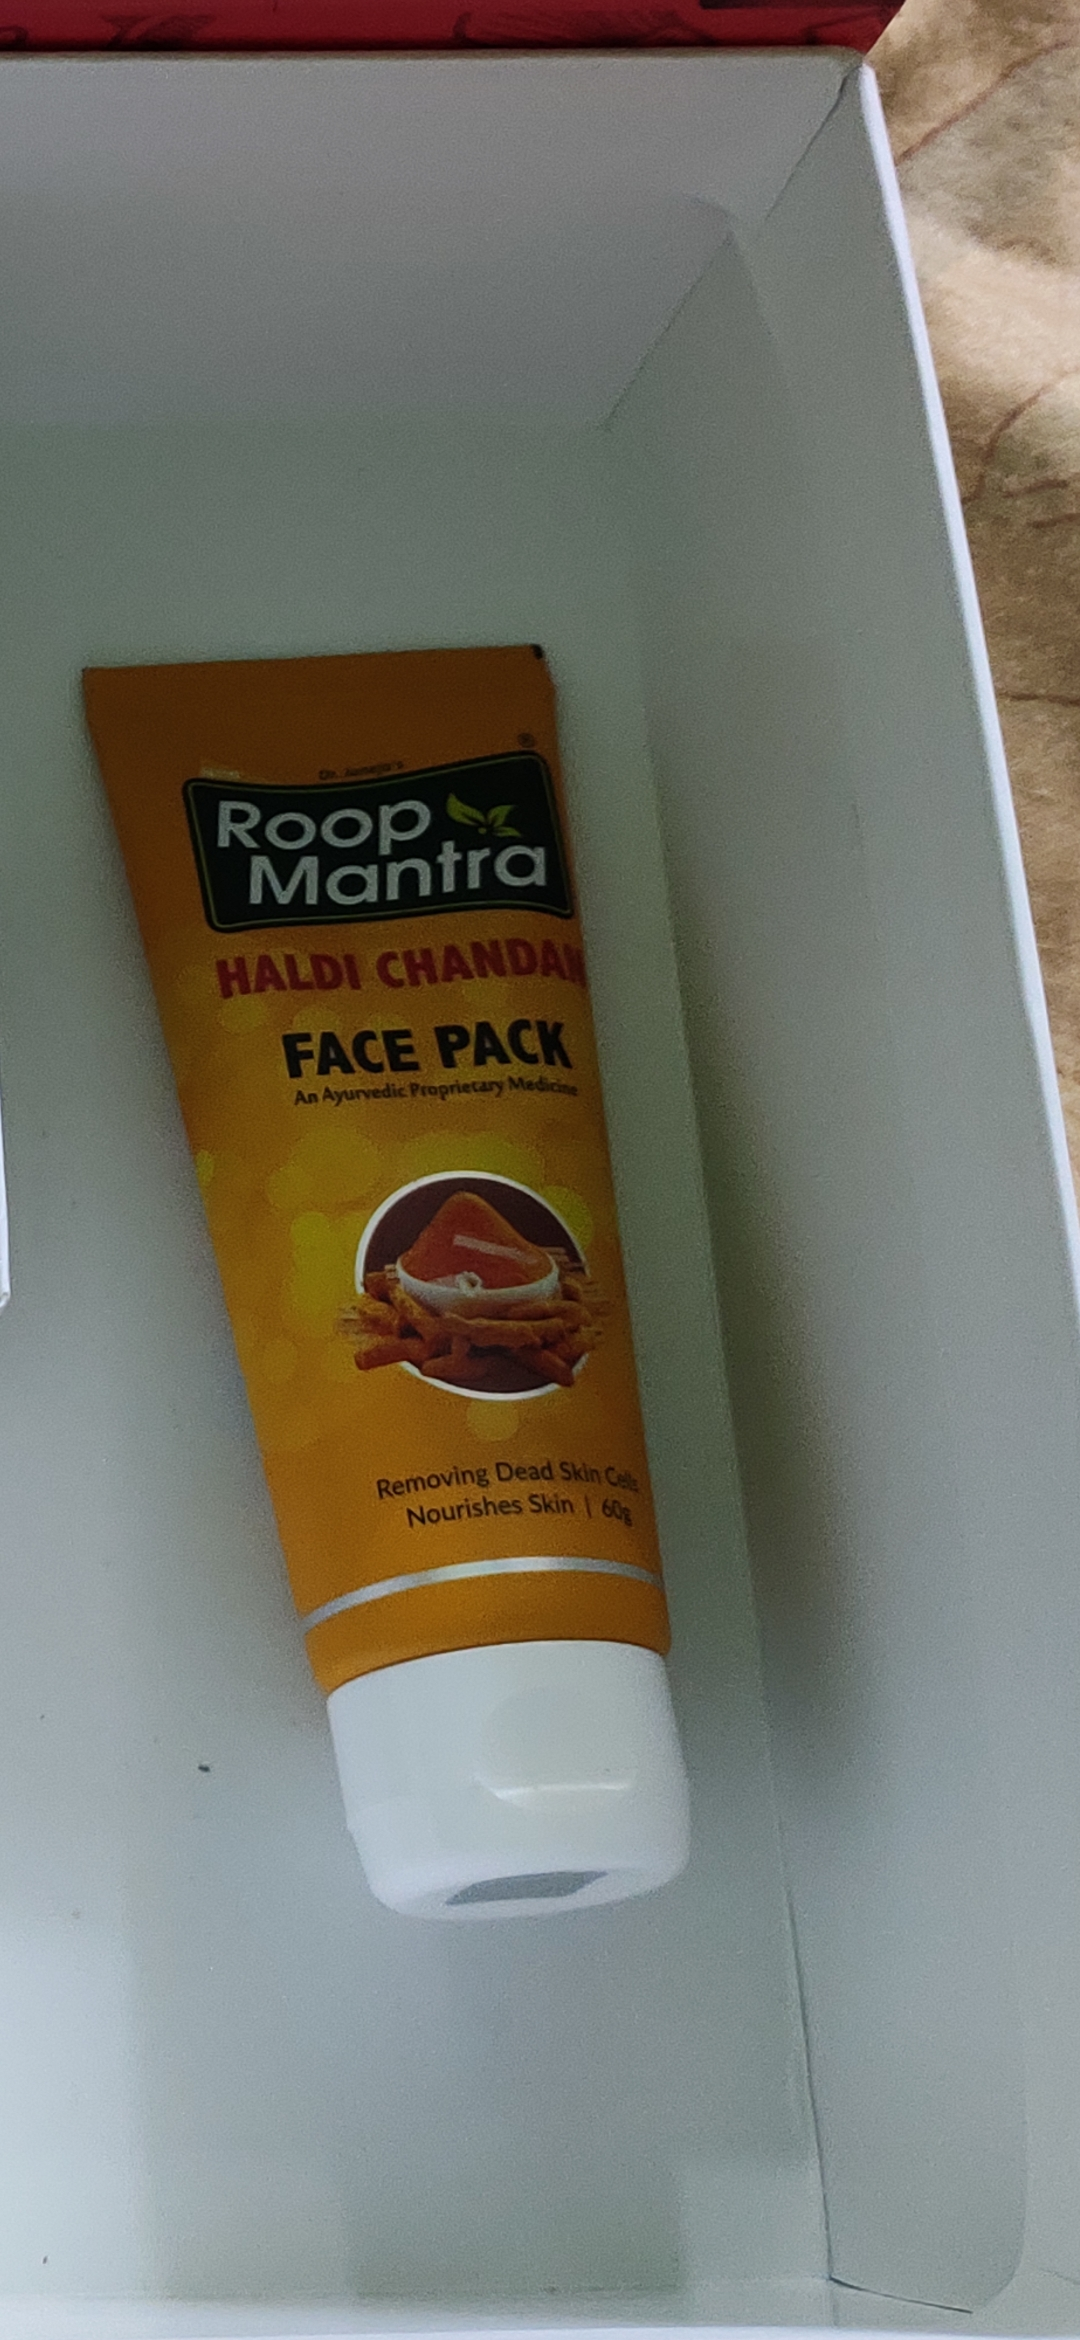 Roop Mantra Haldi Chandan Face Pack-Natural facepack gives a glowing skin-By sneha8620